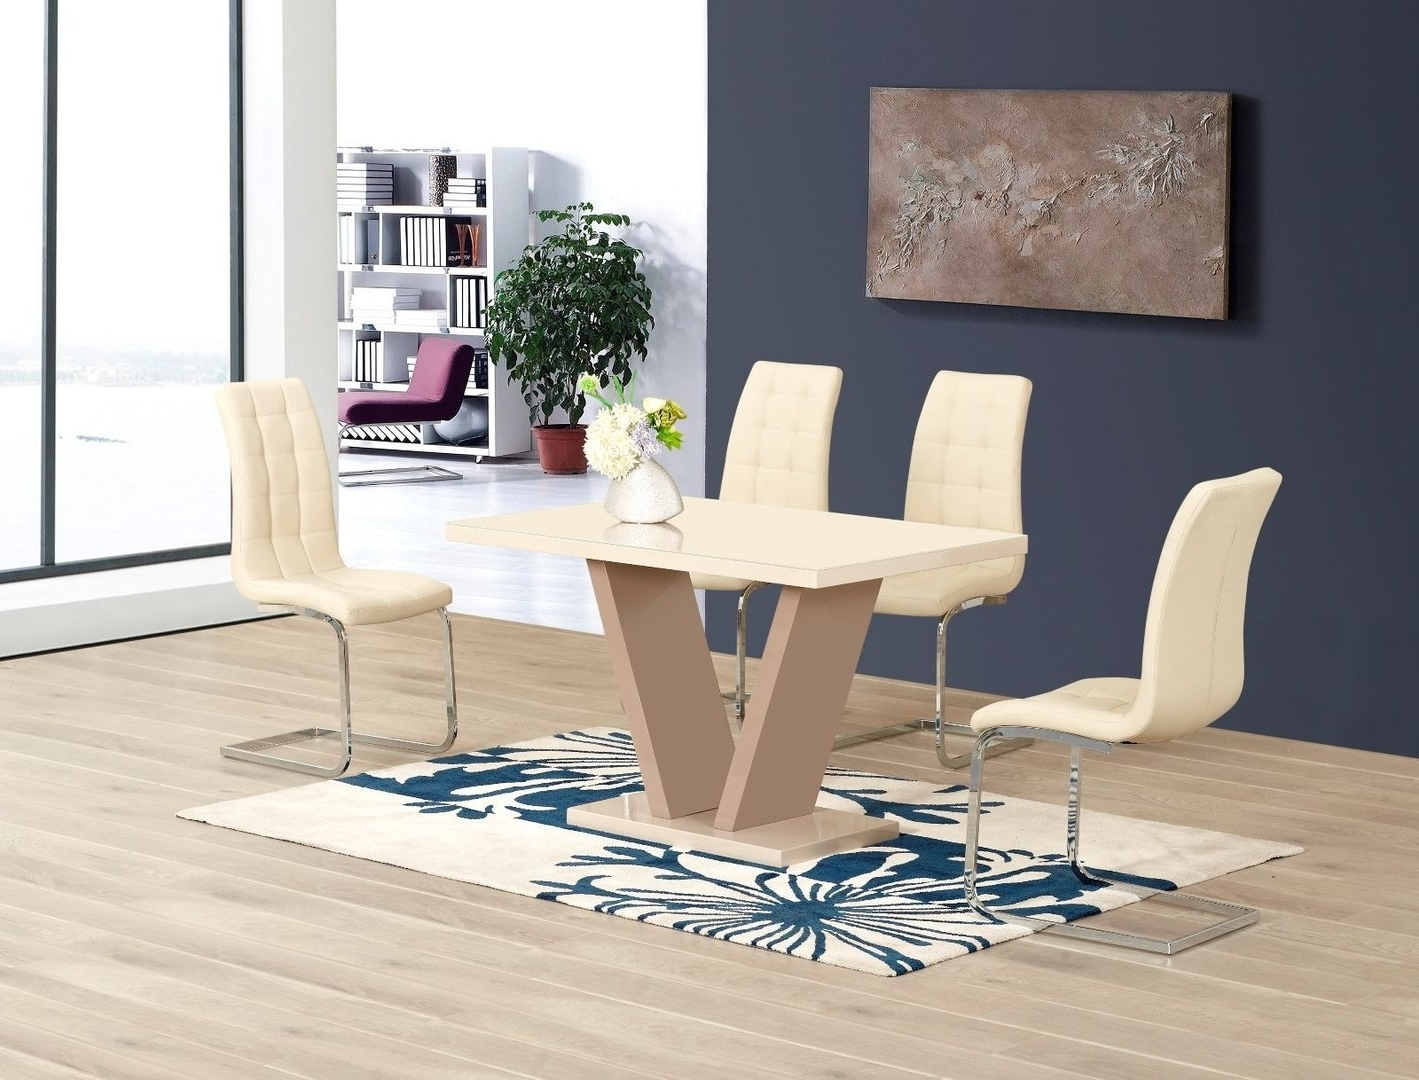 Cream High Gloss Glass Dining Table And 6 Chairs – Homegenies Throughout Most Recently Released Black High Gloss Dining Chairs (View 25 of 25)